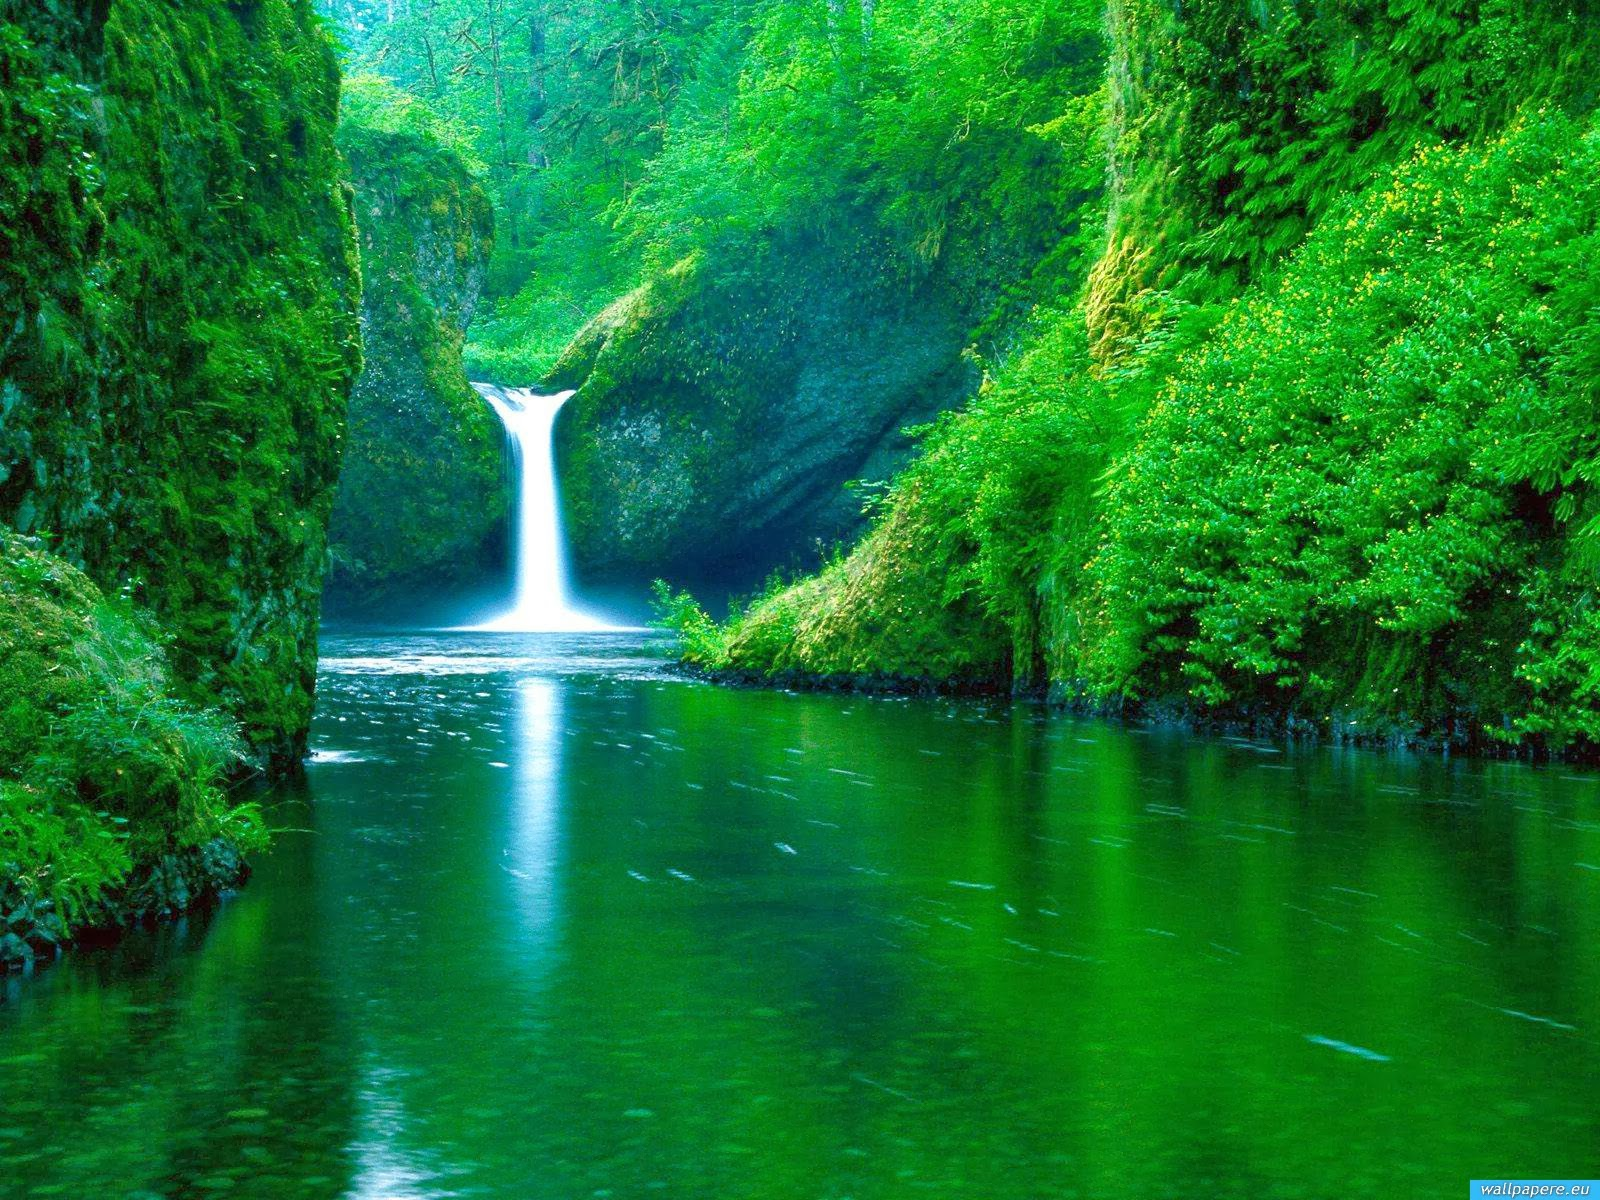 ... : Free Nature Wallpapers Download for PC Desktop Laptop Mobile Phone